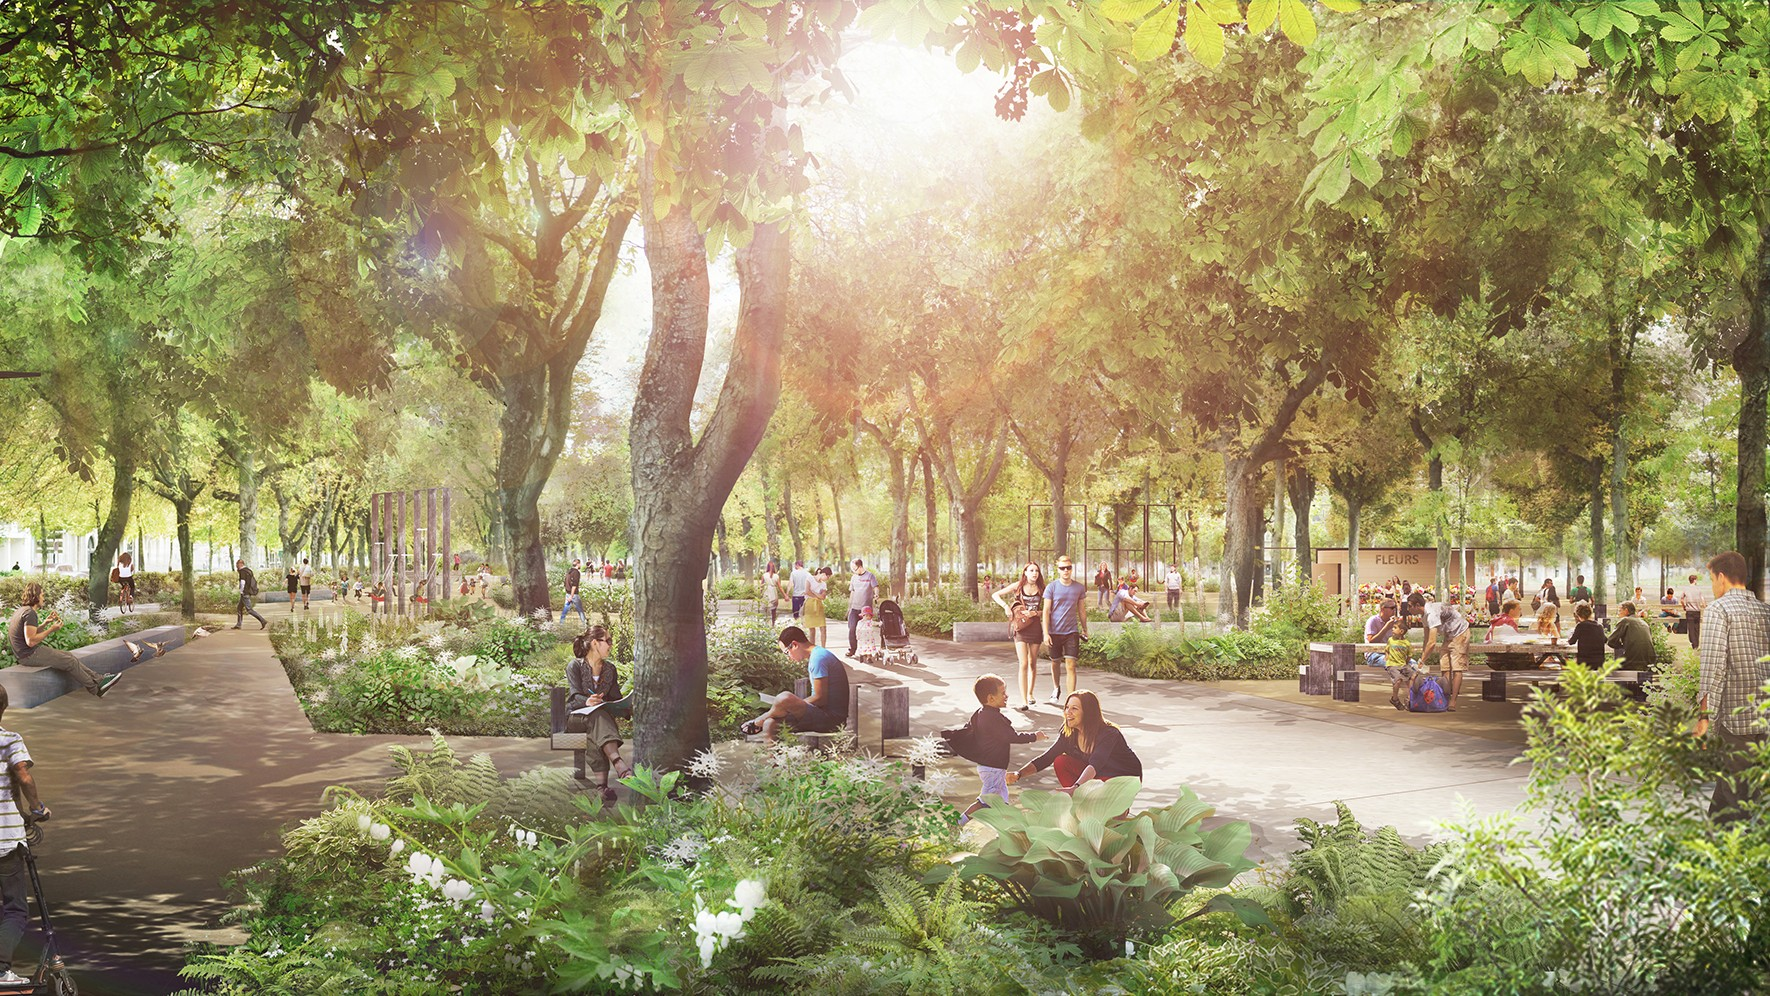 Reims, France: Vert récréatif | «Les Promenades» et «Central Park» (visualisations: AJOA, Paris)